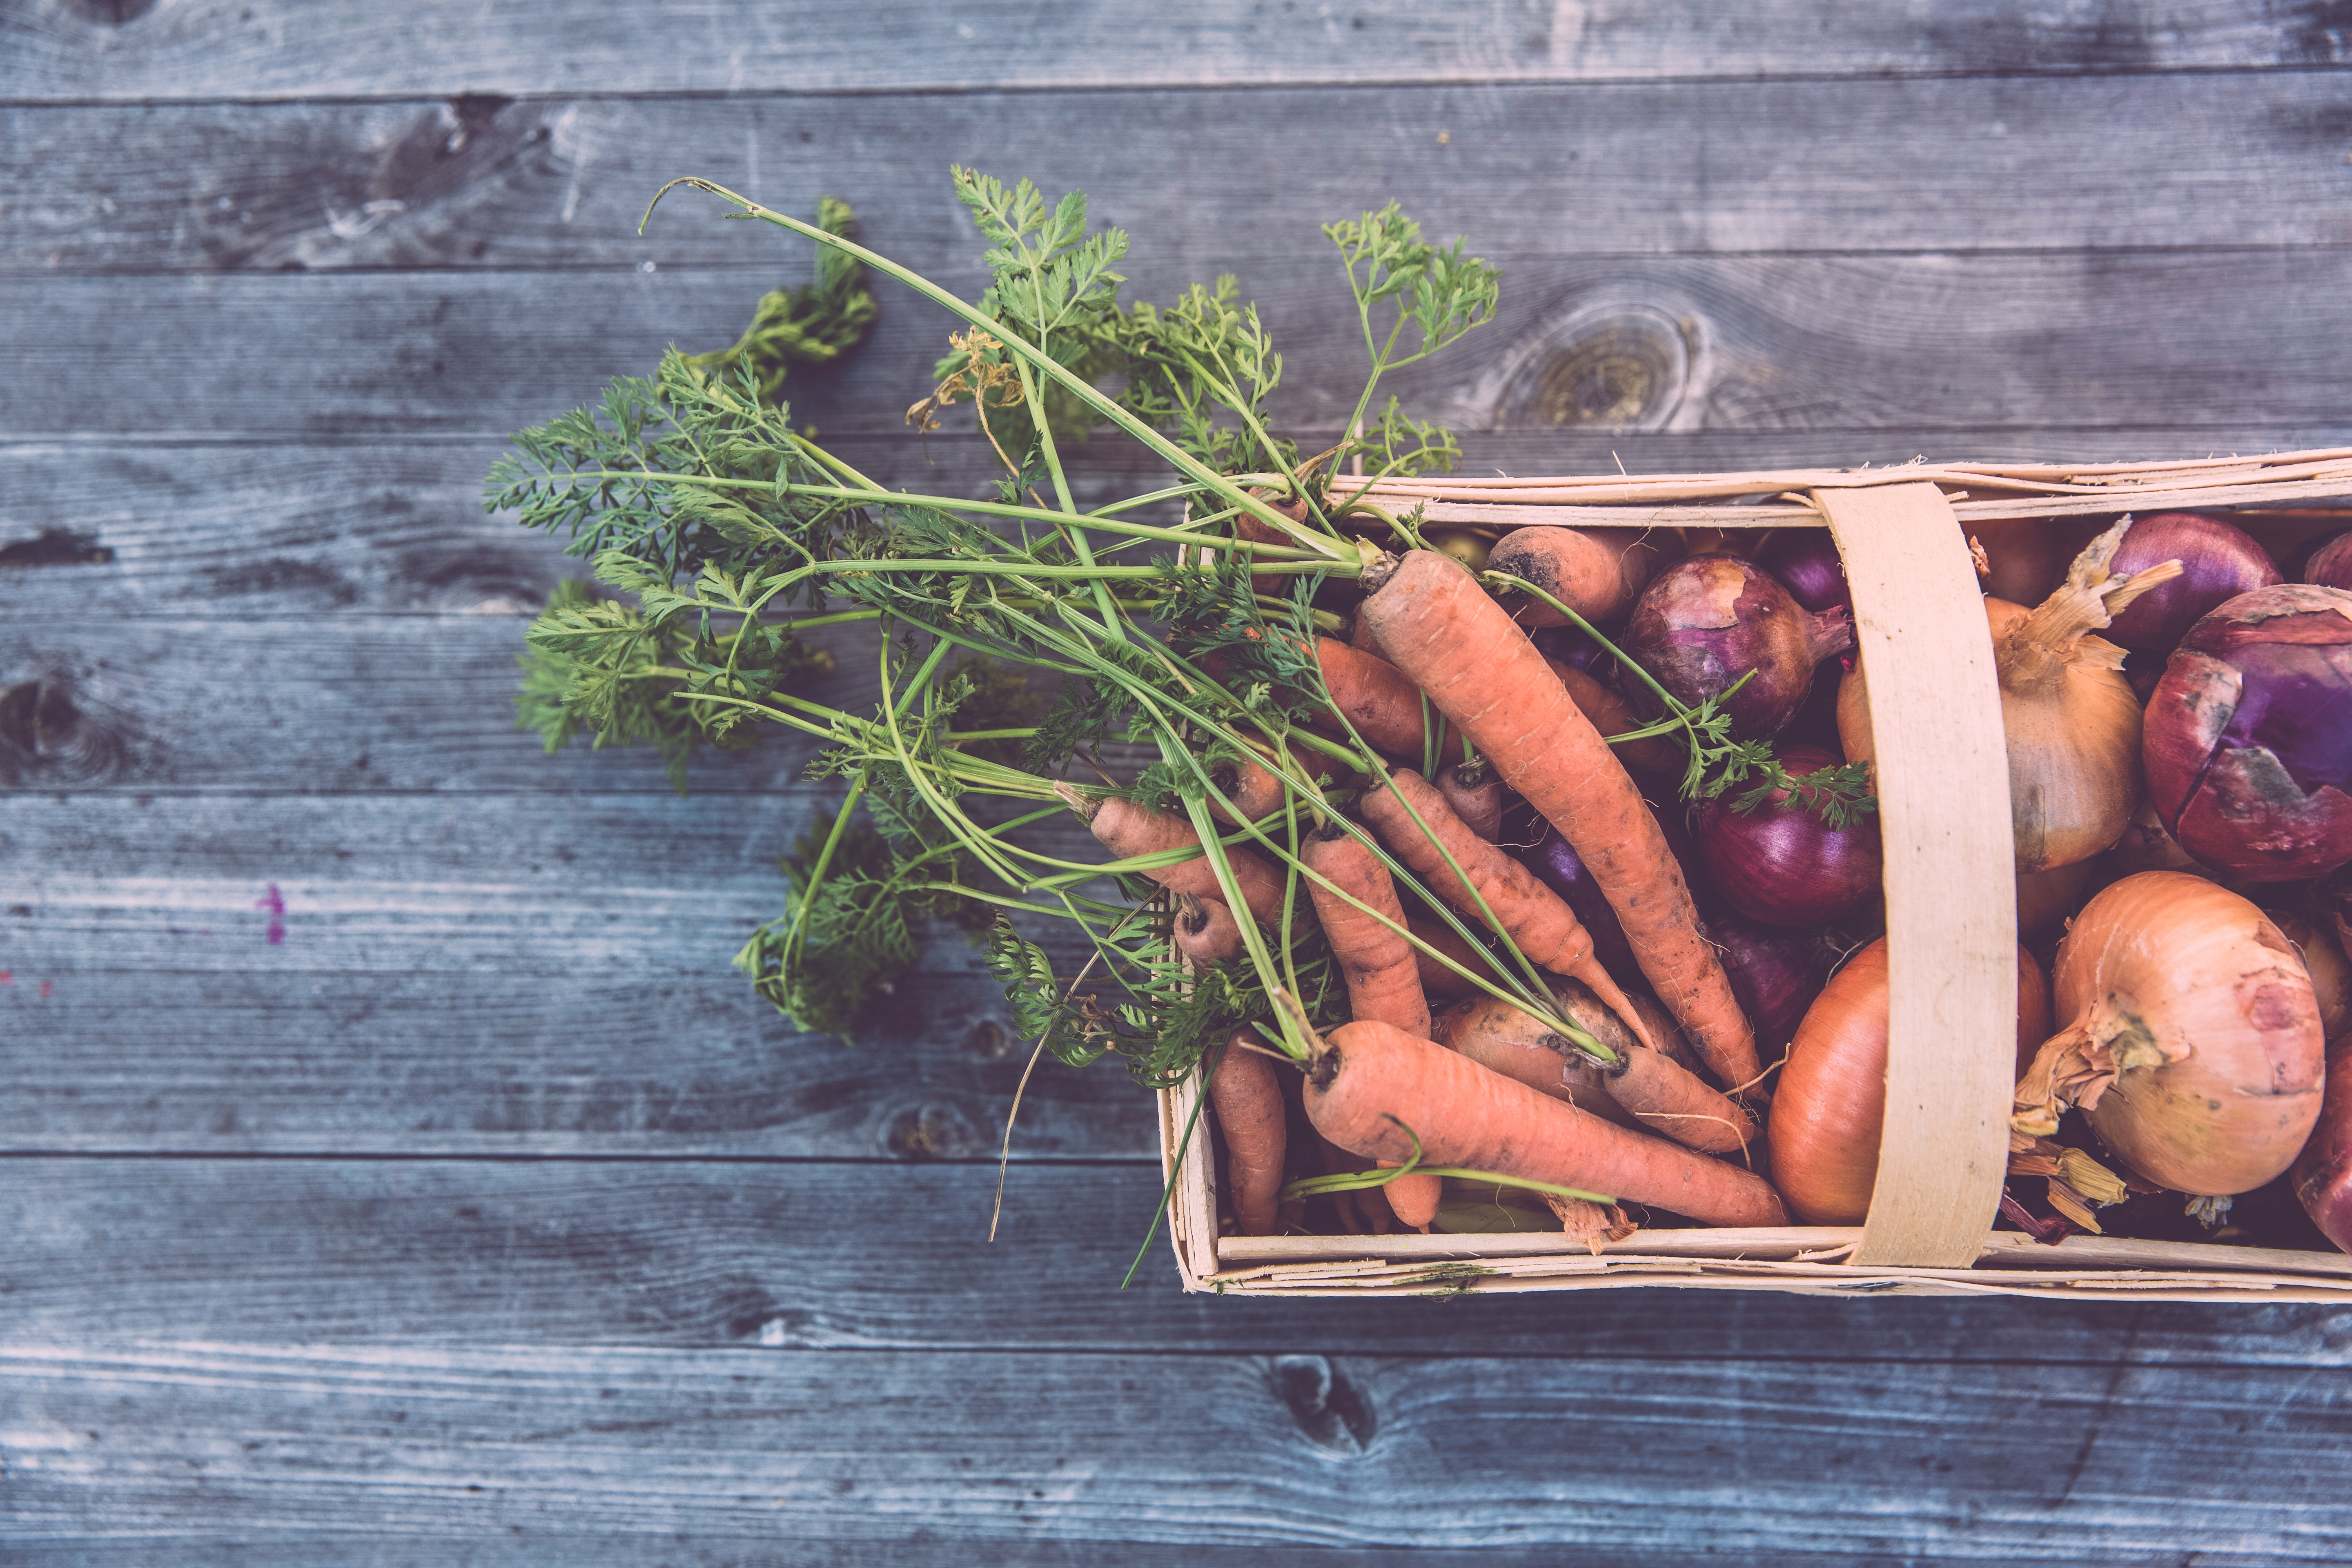 Making the food supply chain work for everyone